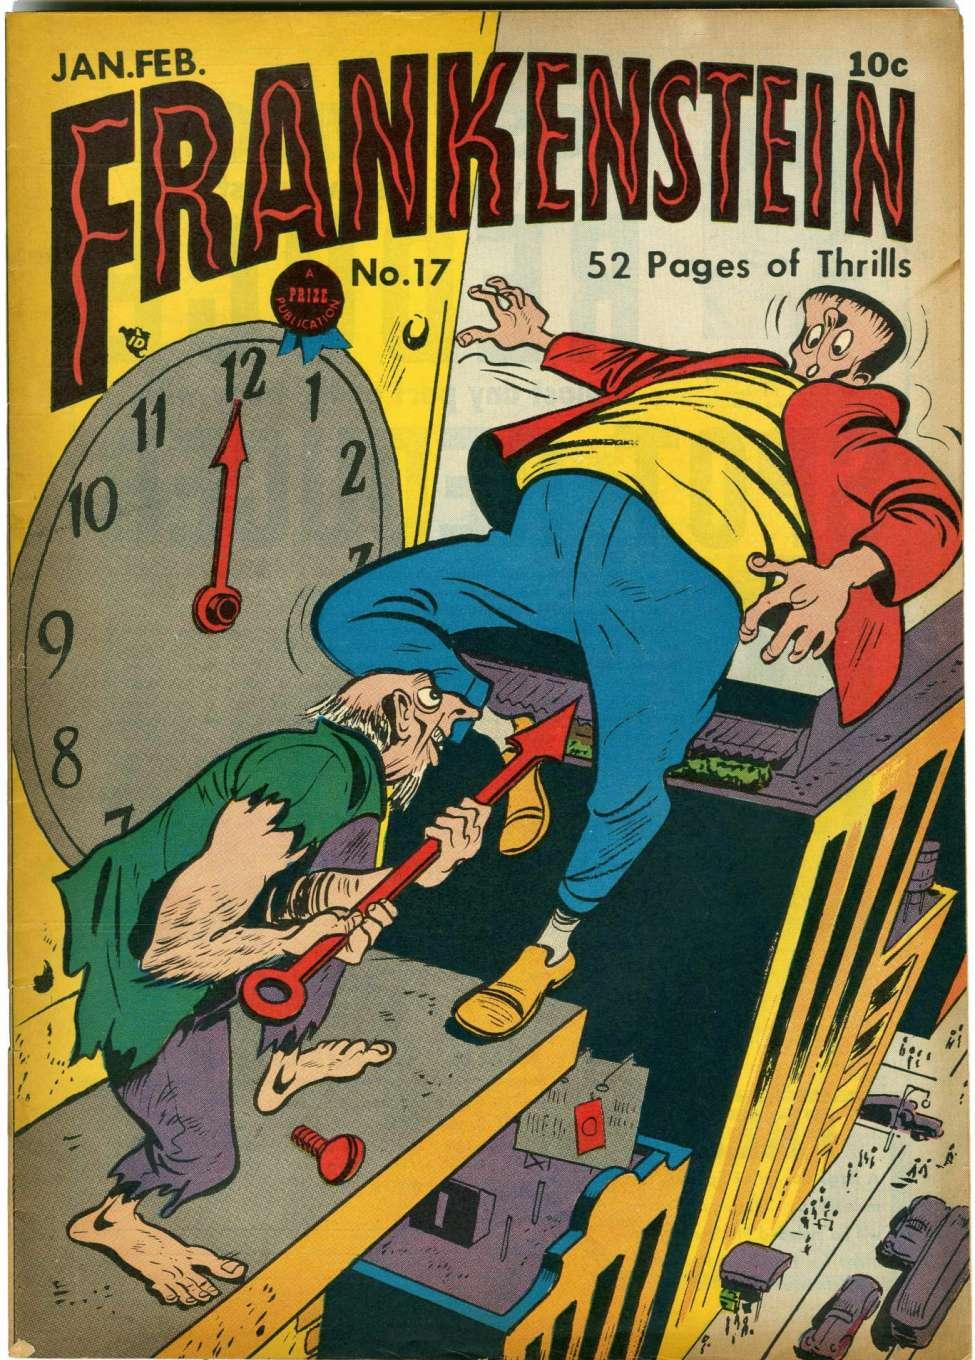 Comic Book Cover For Frankenstein v2 5 (17)